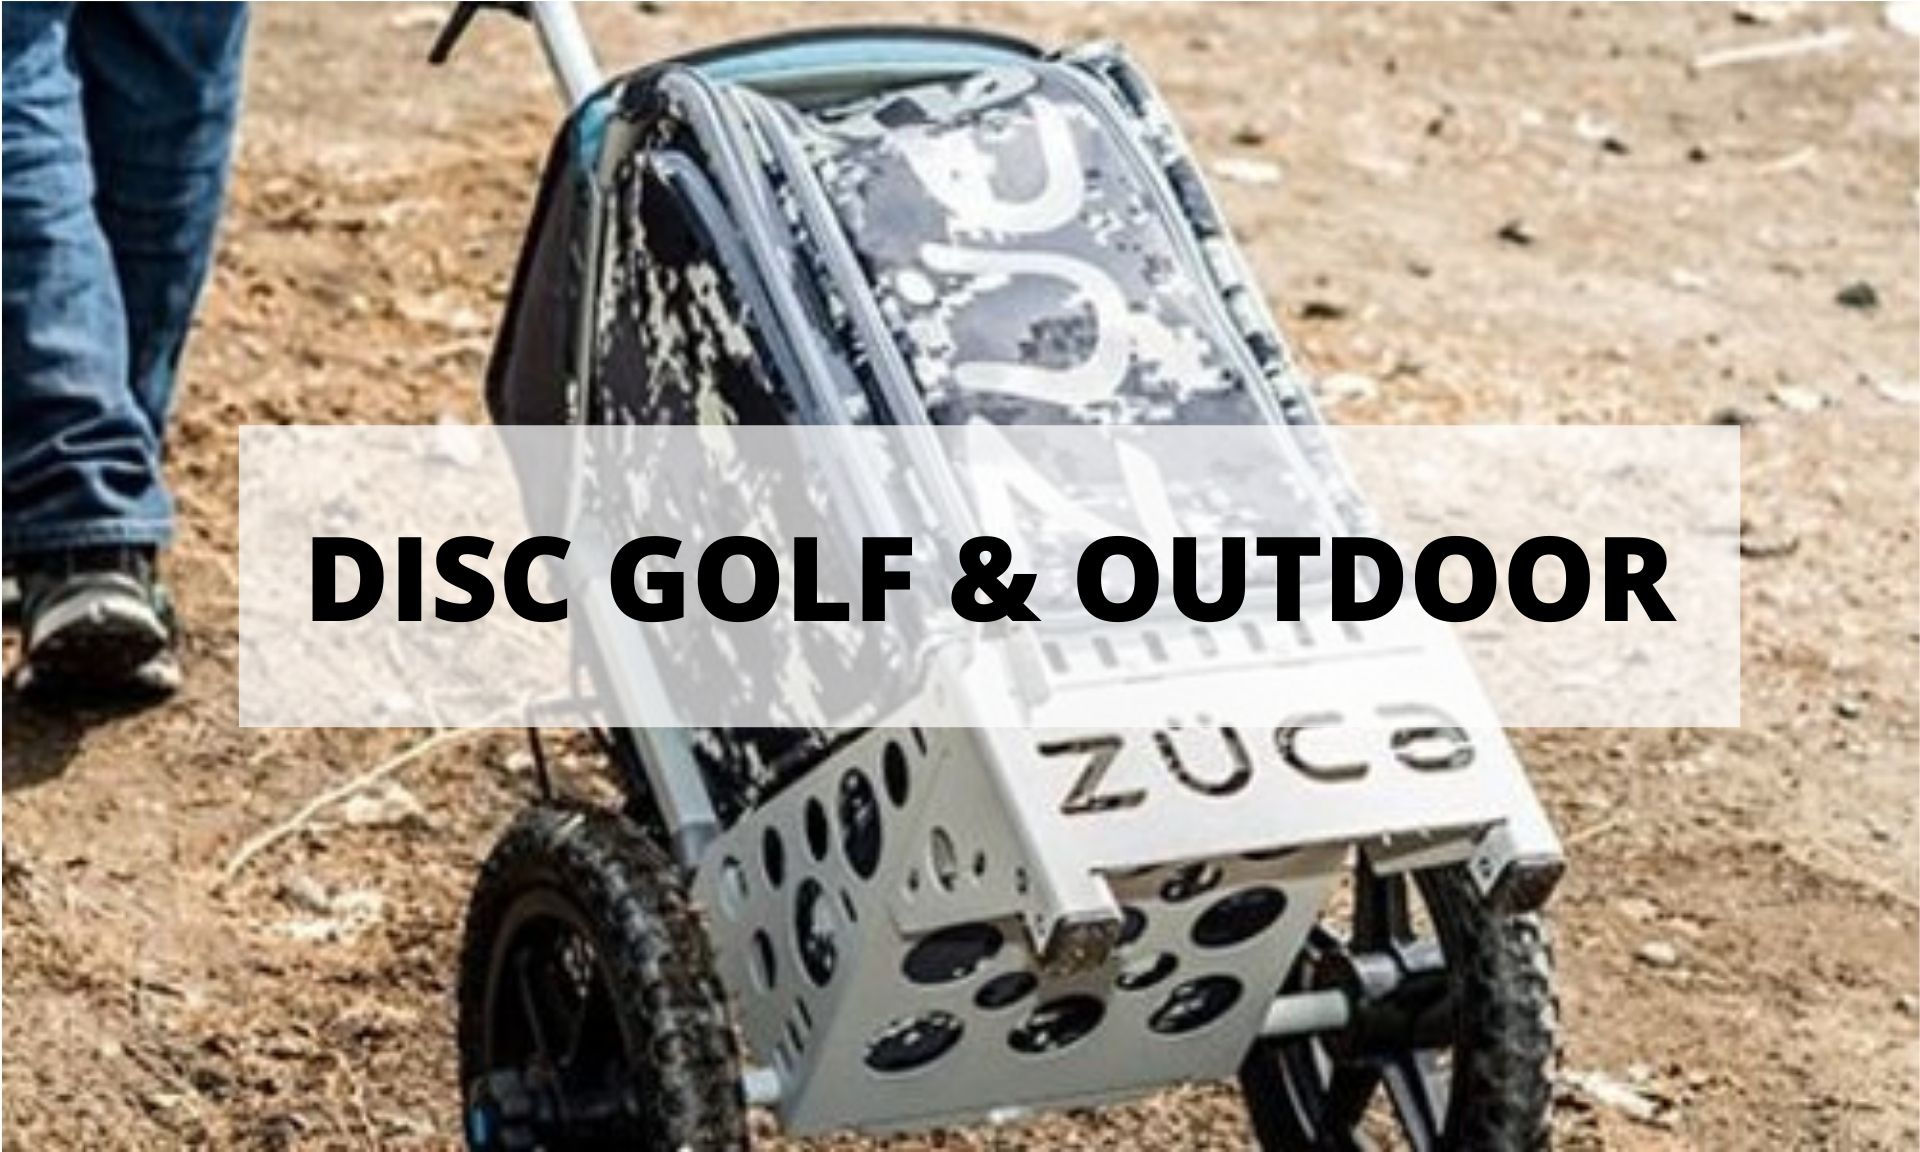 ZUCA DISC GOLF & OUTDOOR